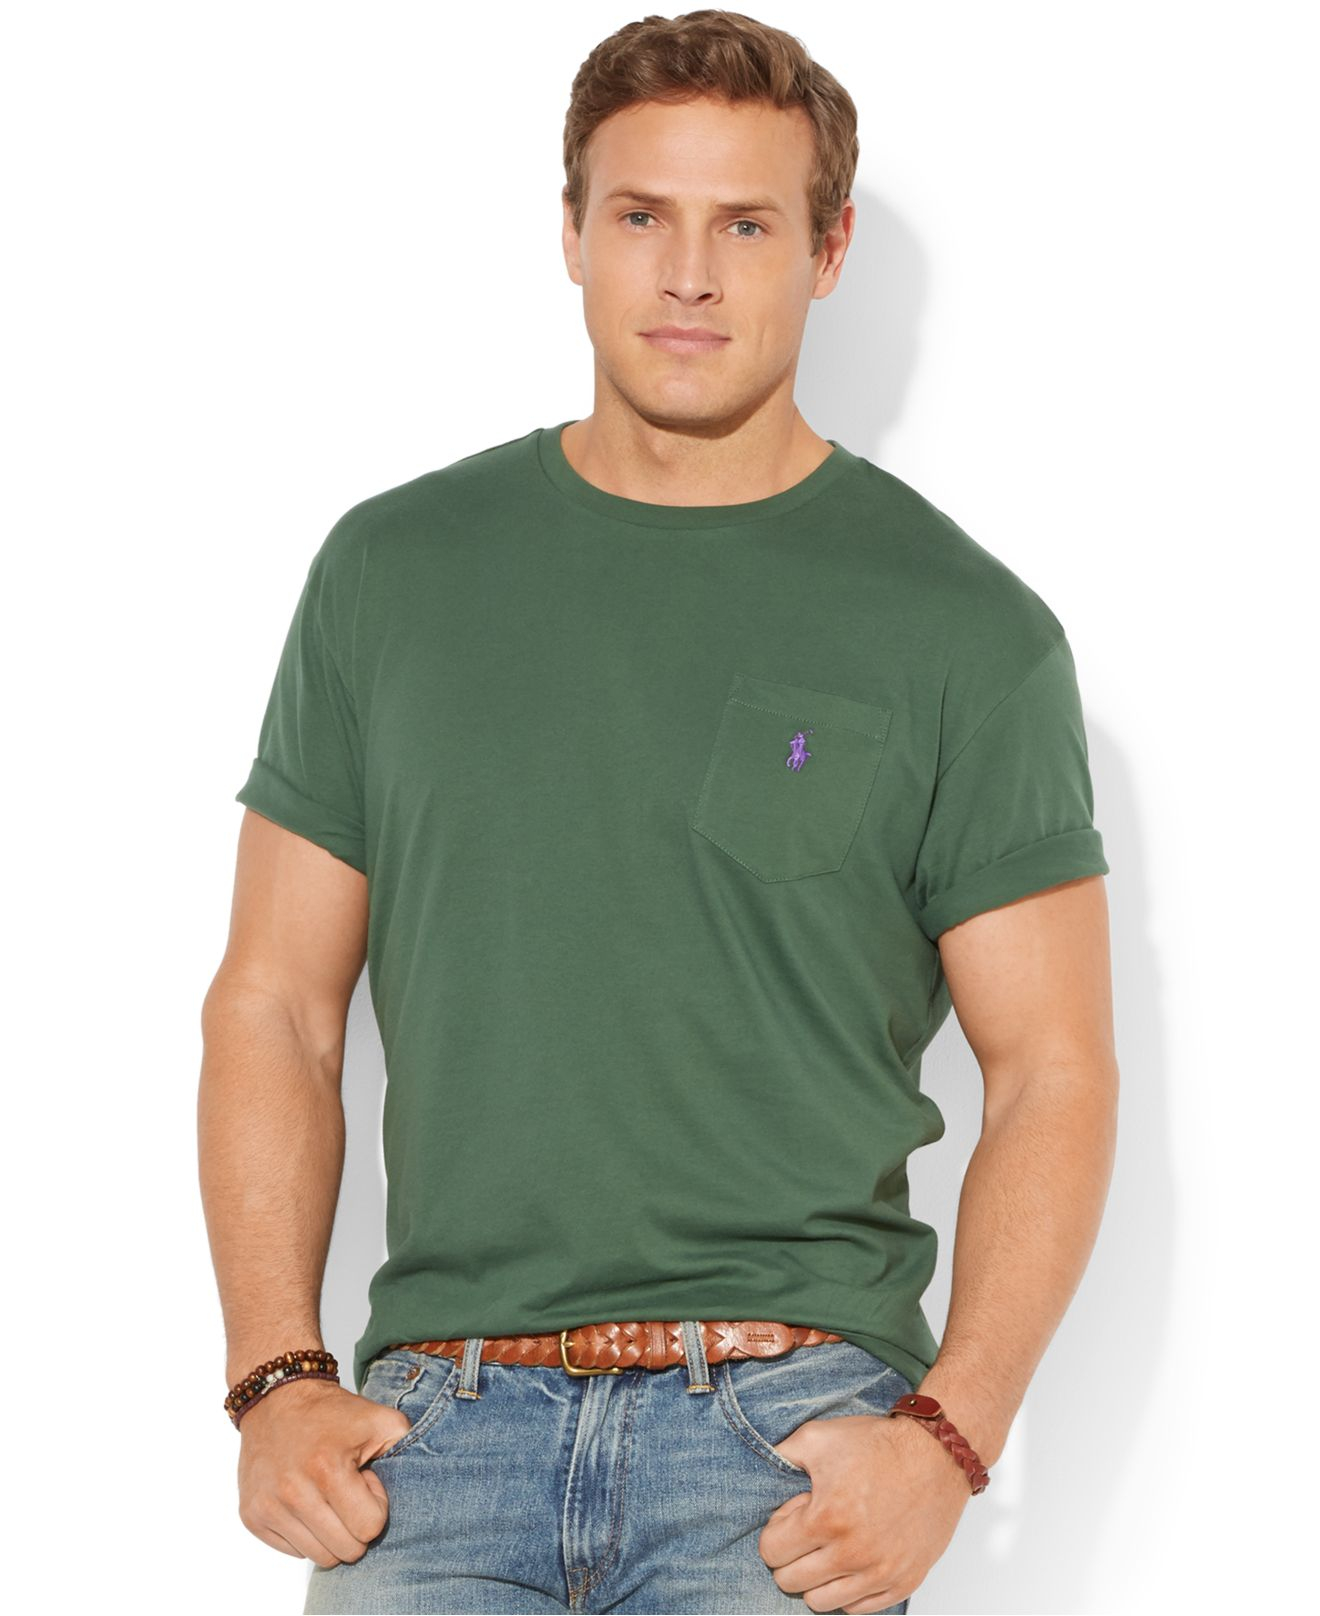 Polo ralph lauren big and tall classic fit jersey pocket for Big and tall polo shirts with pockets